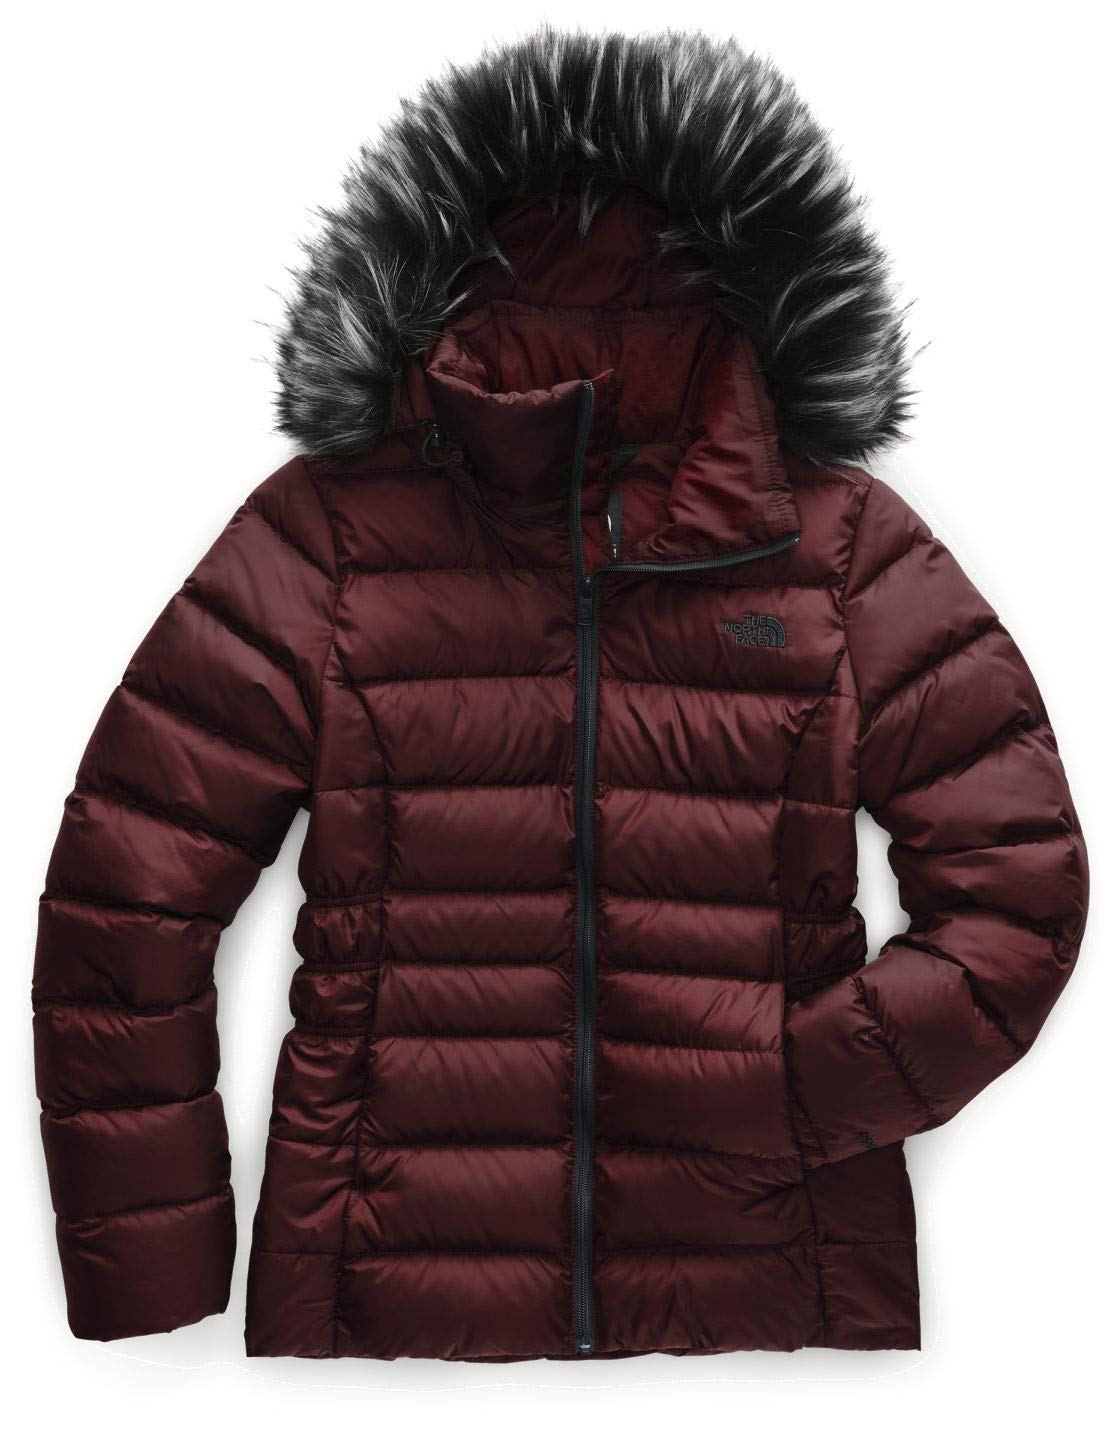 The North Face Women's Gotham Jacket II by The North Face